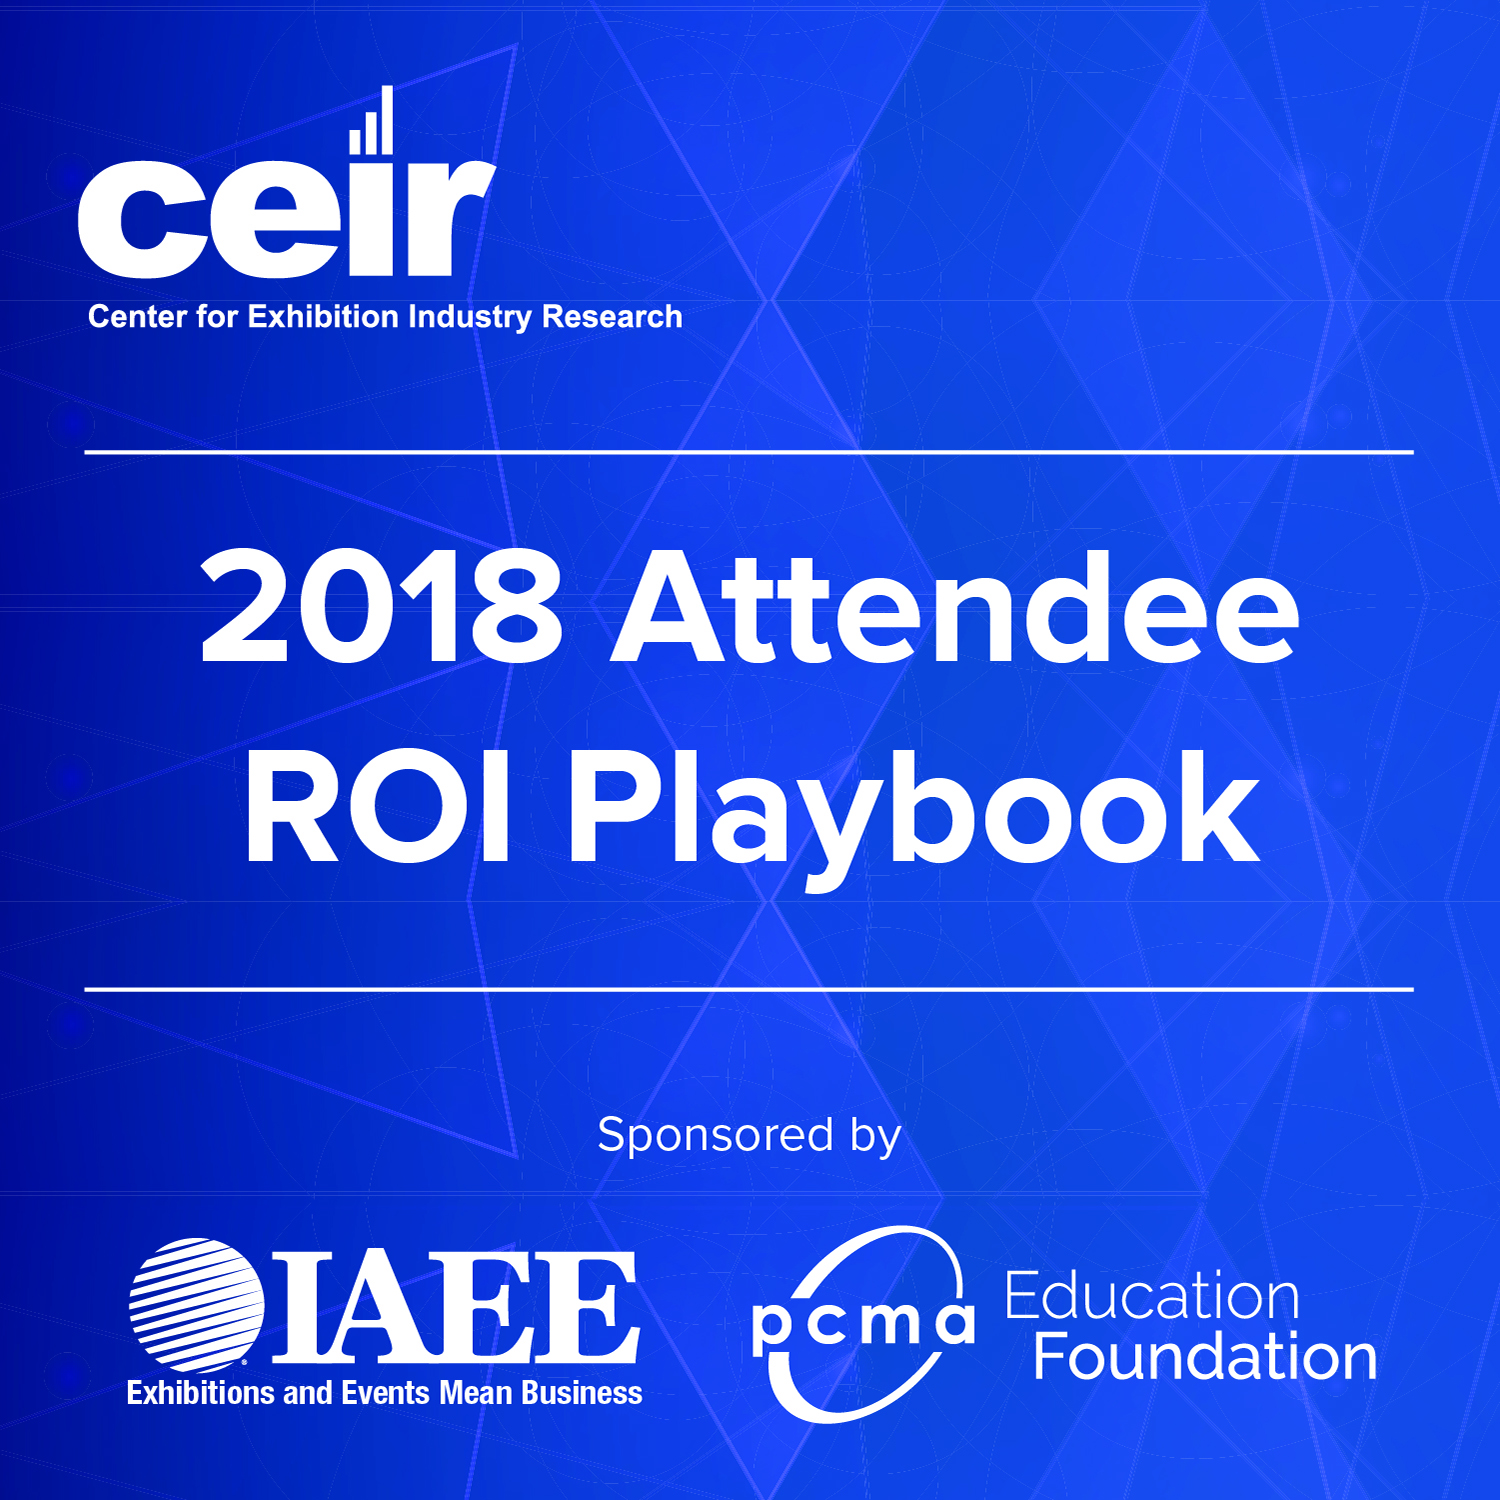 2018 Attendee ROI Playbook: Part 2